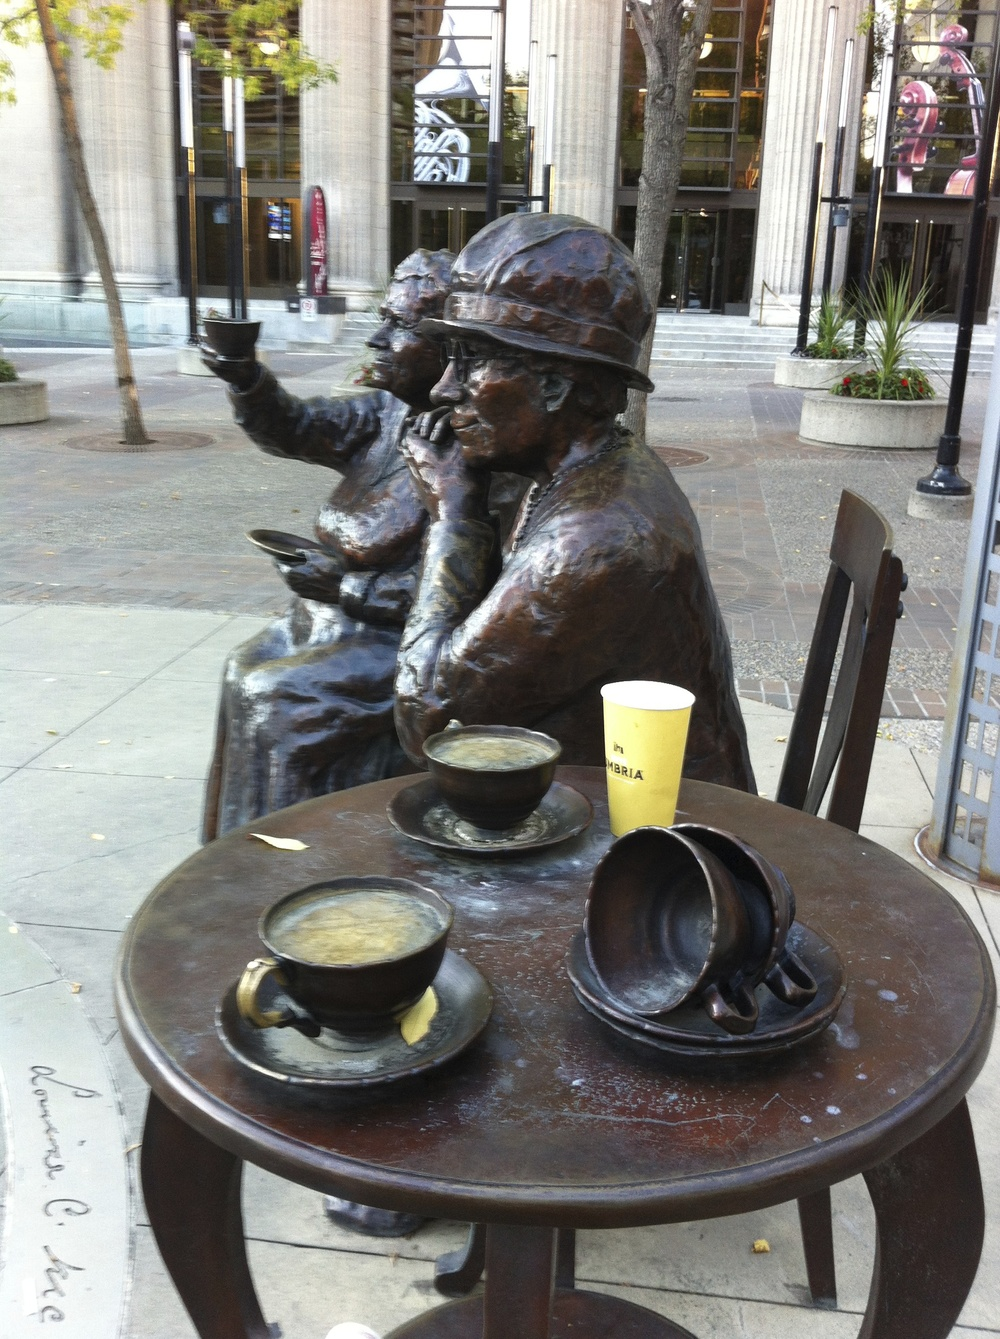 Henrietta Muir Edward sits next to McKinney holding up her cup of tea as if she is toasting the victory.  People love to interact with the sculptures often leaving their coffee cups or other artifacts on the table.